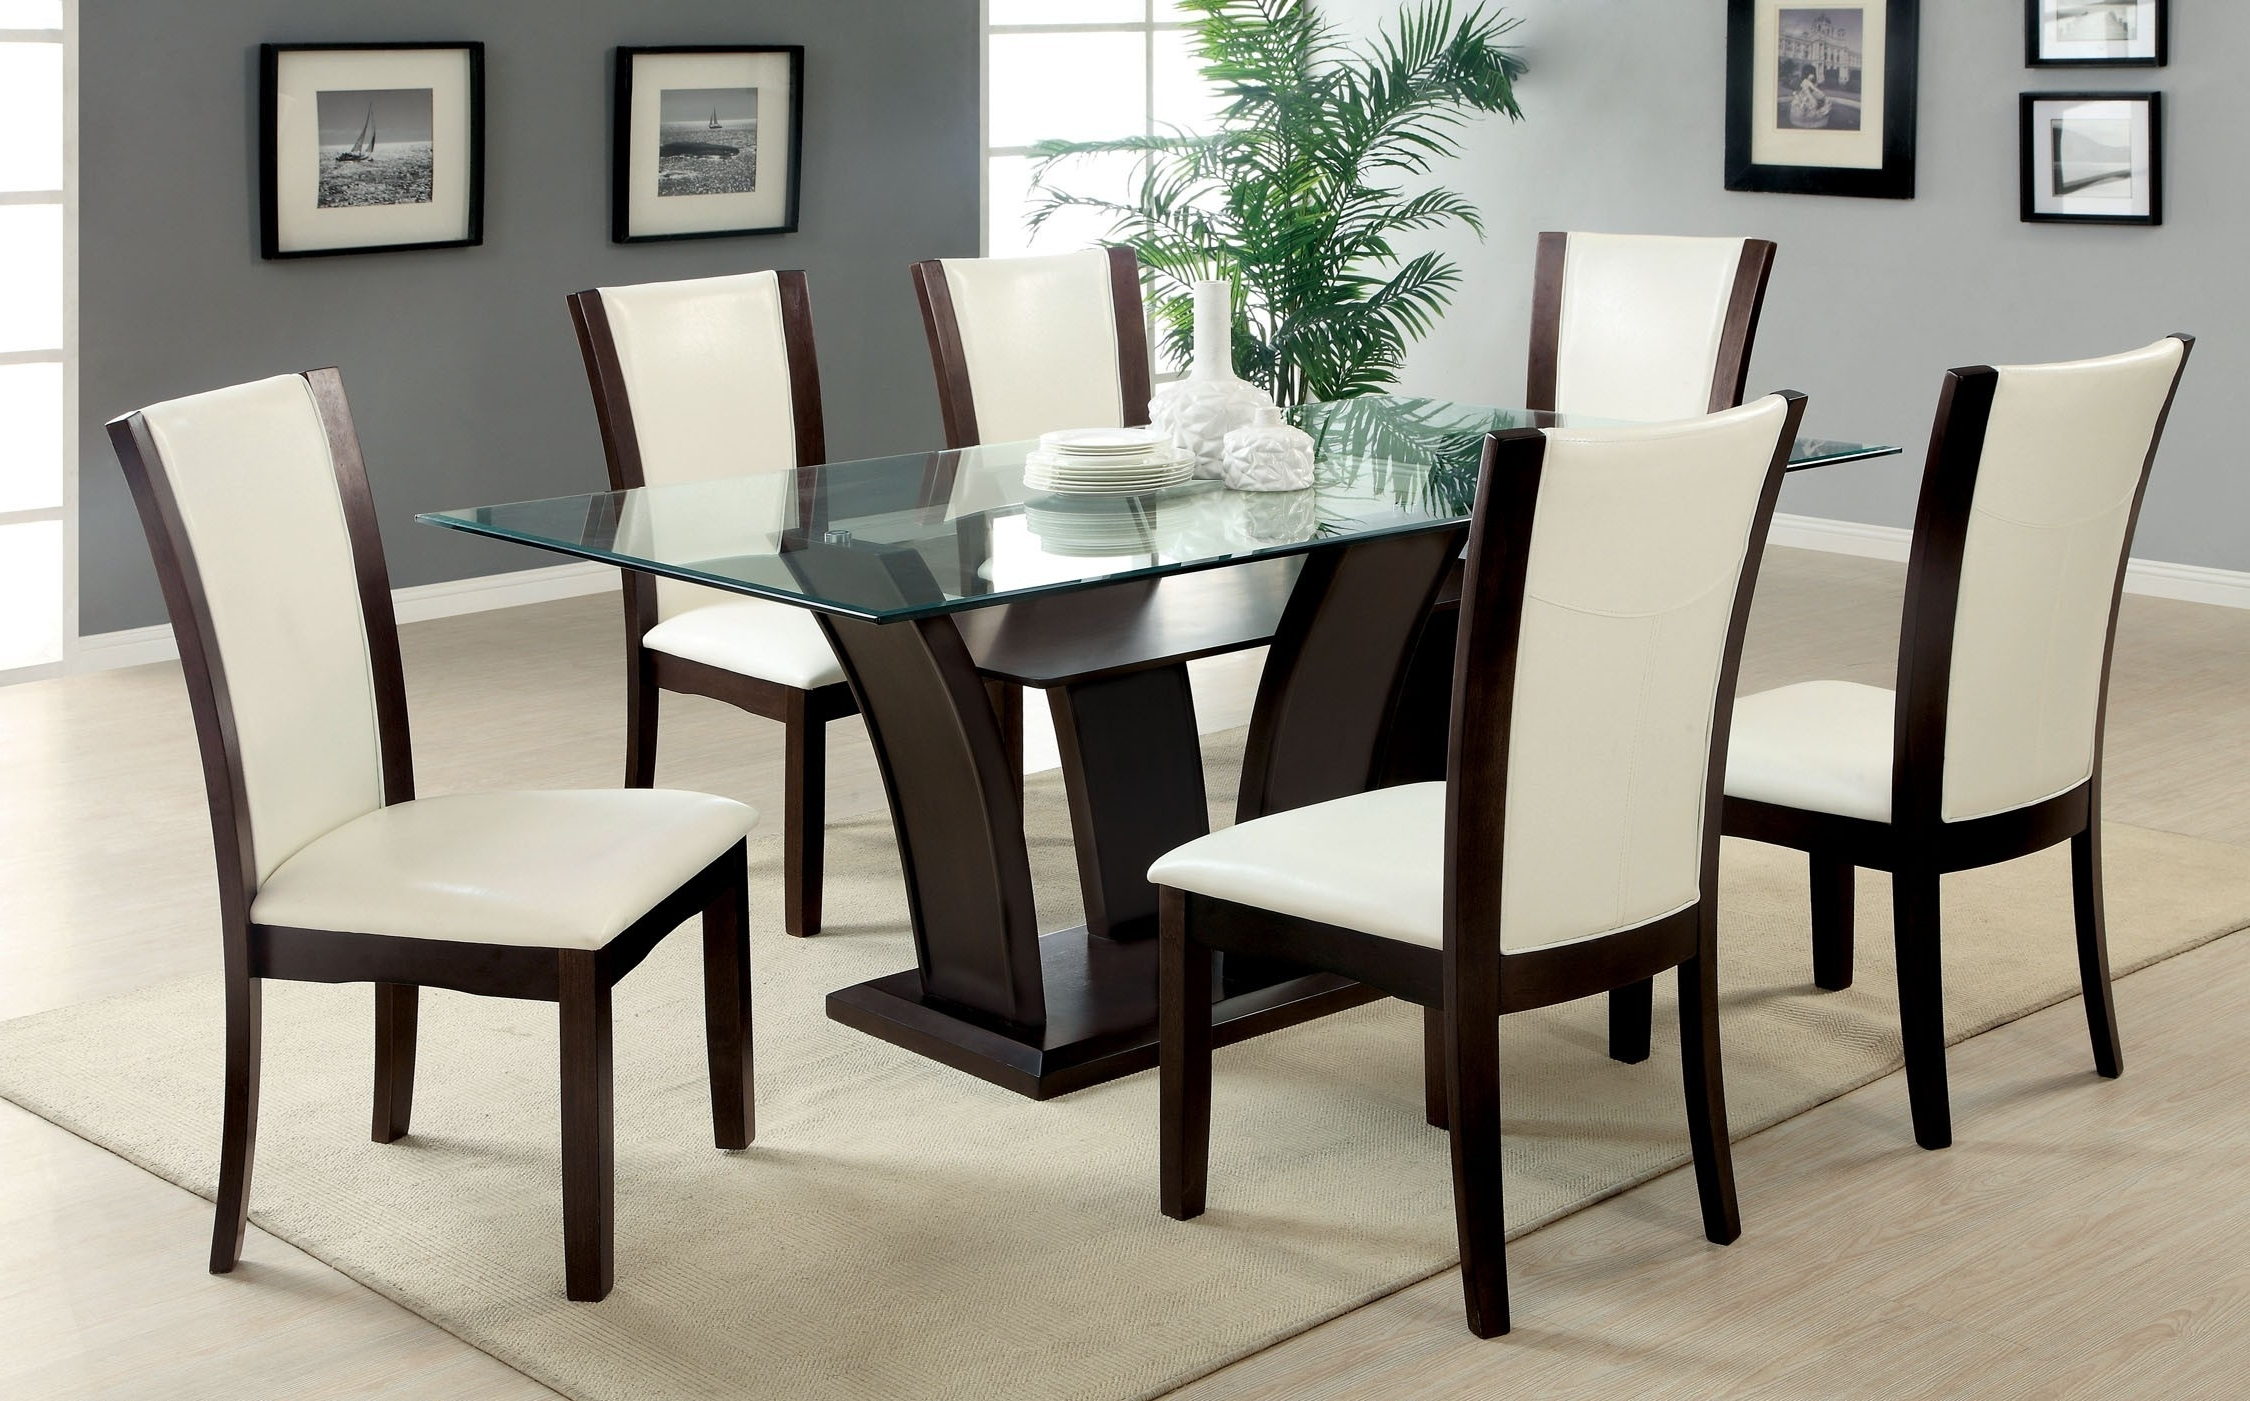 Preferred Glass Top Dining Table With 8 Chairs – Glass Decorating Ideas Regarding Dining Tables And 8 Chairs Sets (Gallery 14 of 25)